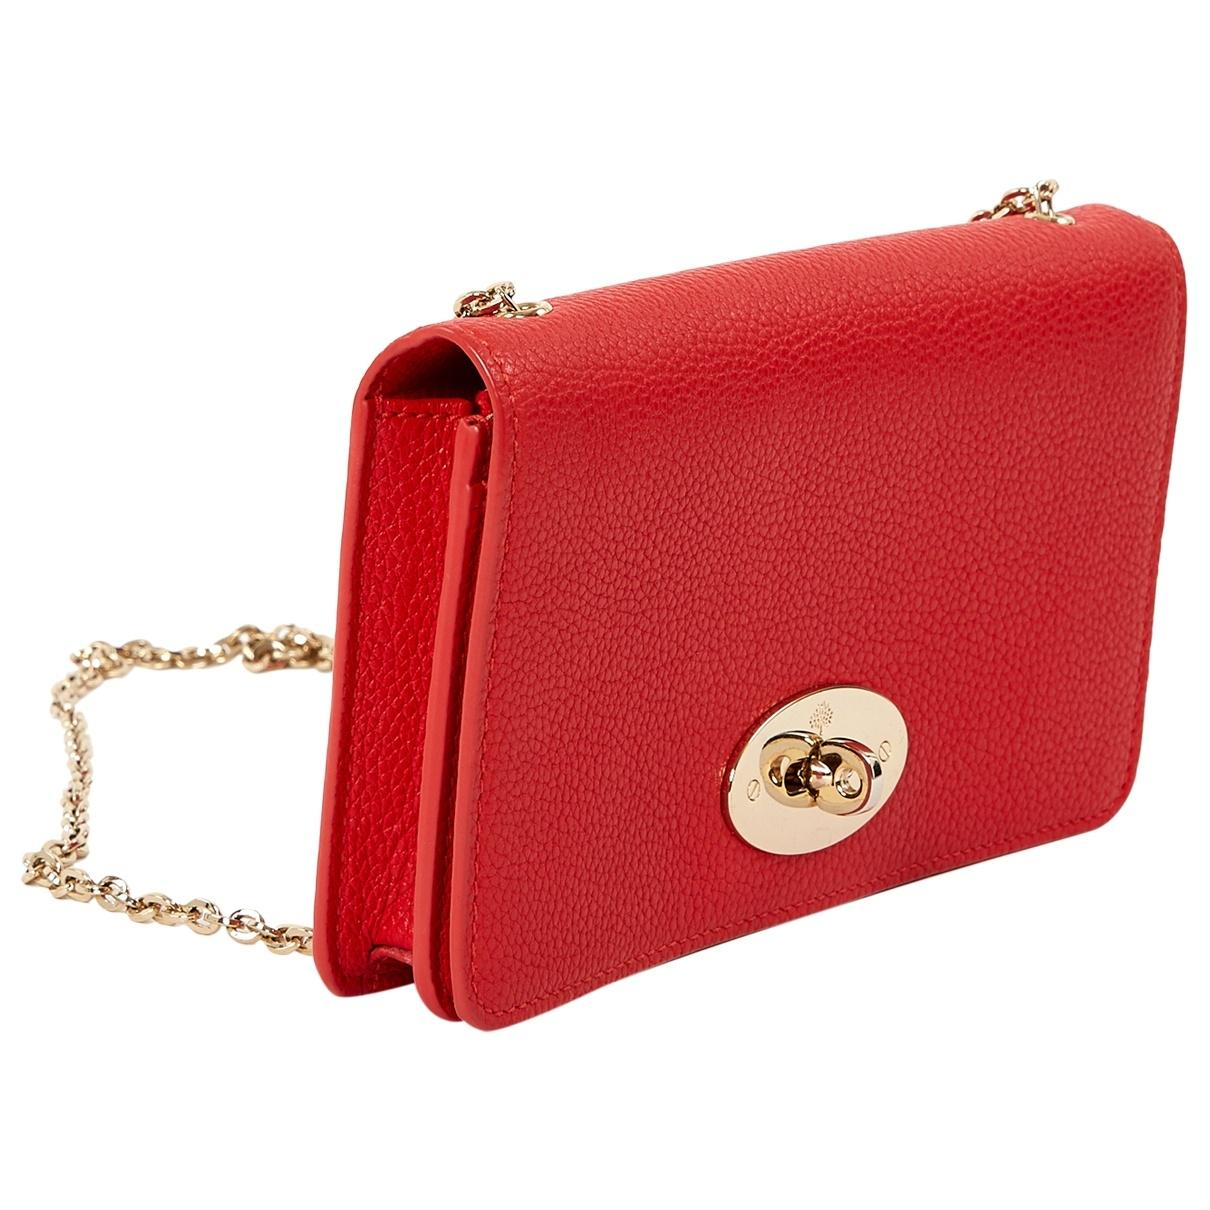 Mulberry. Women s Red Leather Clutch Bag.  307 From Vestiaire Collective b696ef7f980e1